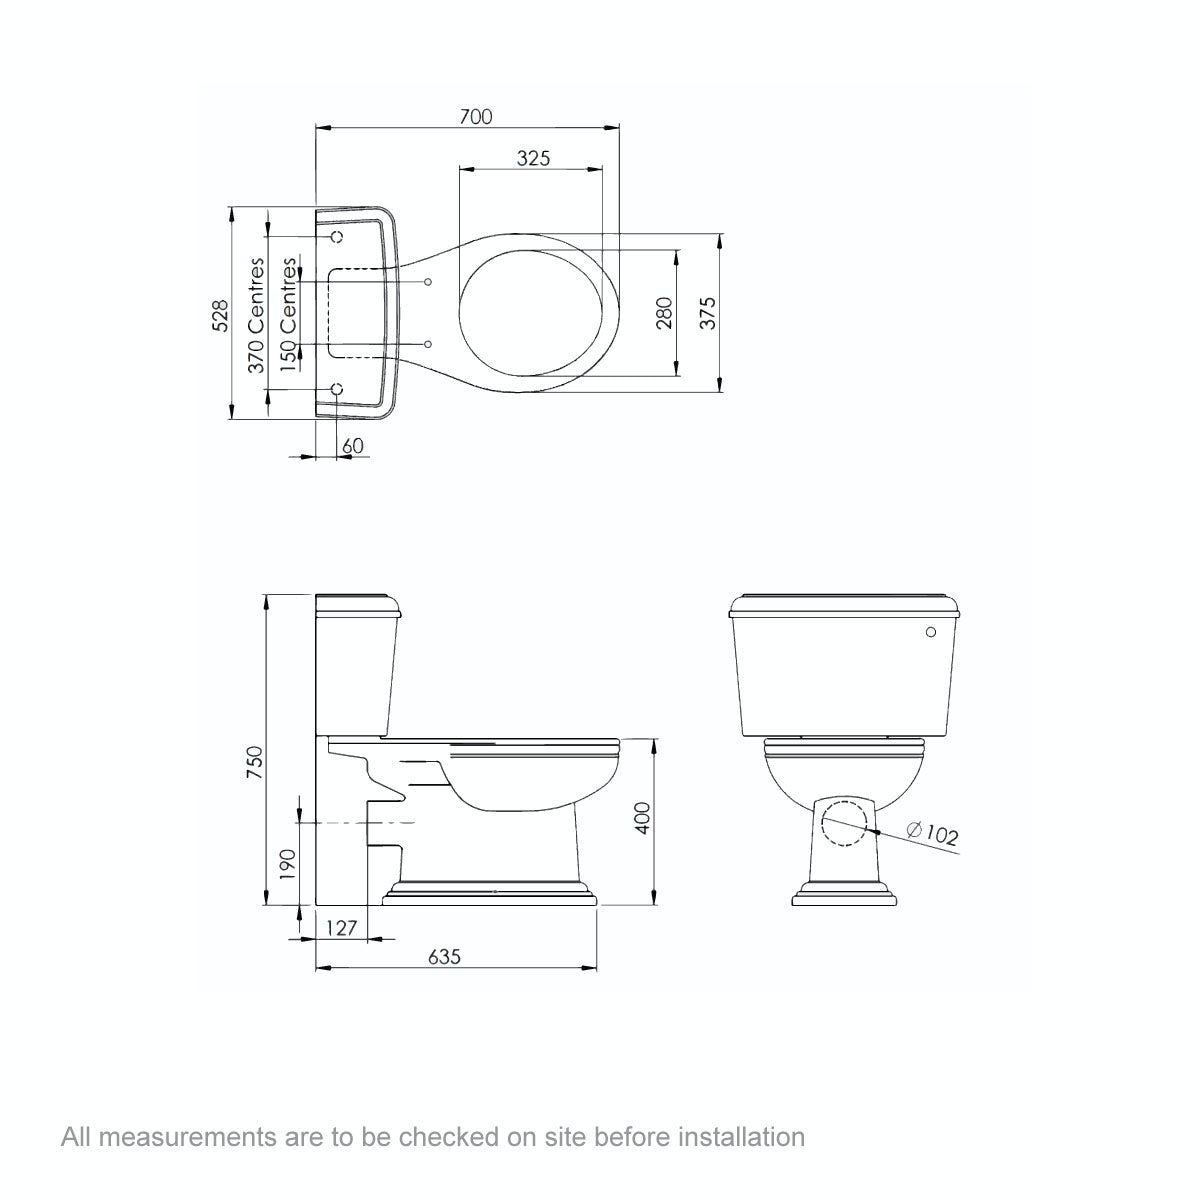 Dimensions for Belle de Louvain Charlet close coupled toilet and full pedestal suite with chrome fittings and taps